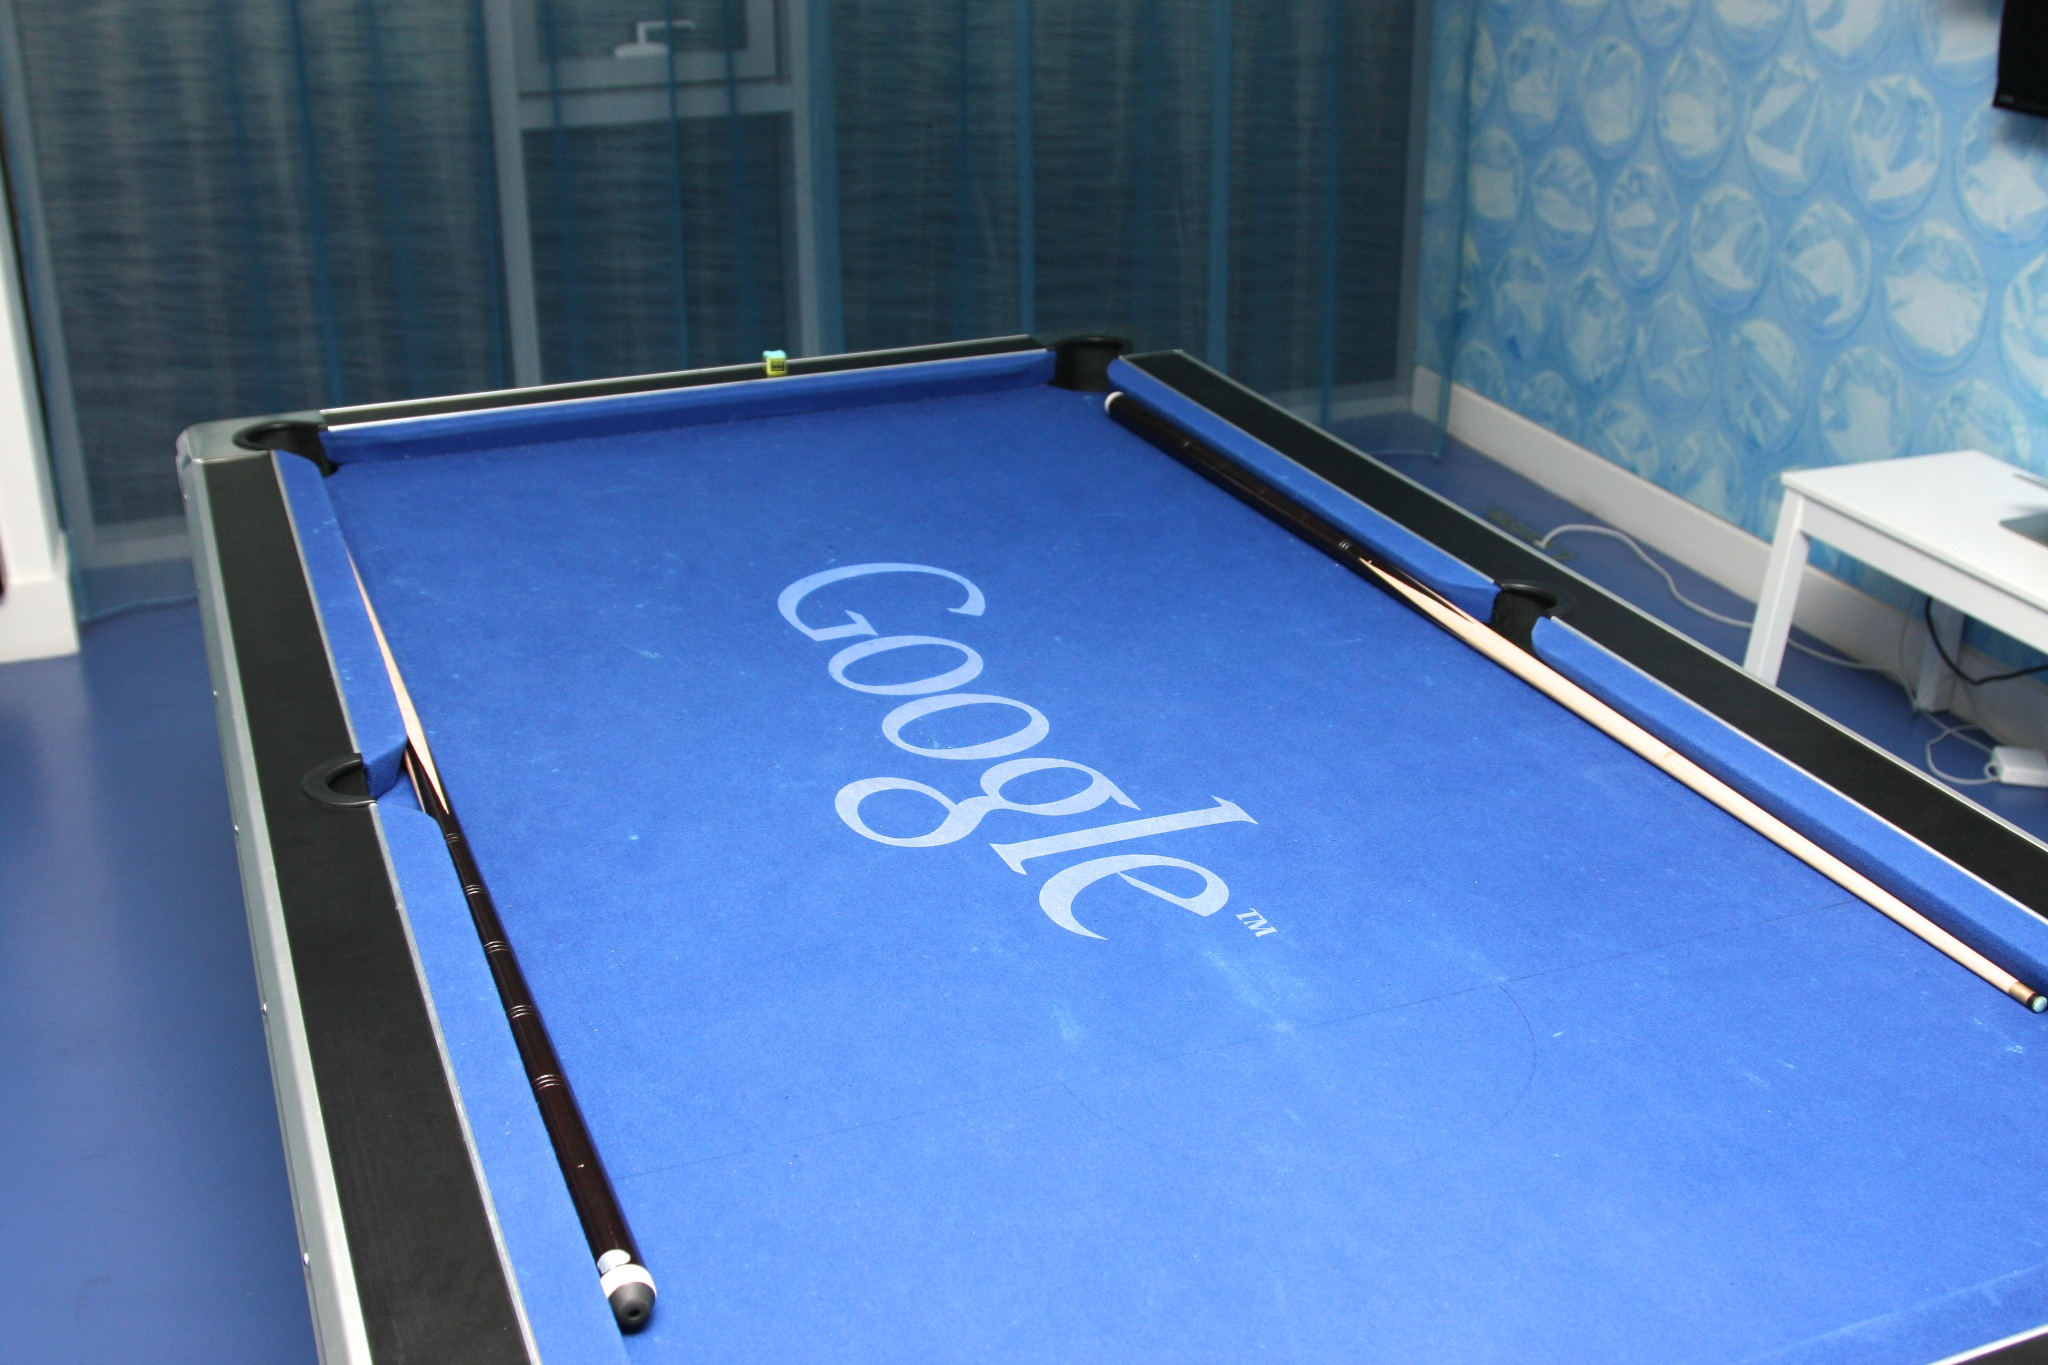 Google pool table. Credit: The Sociable